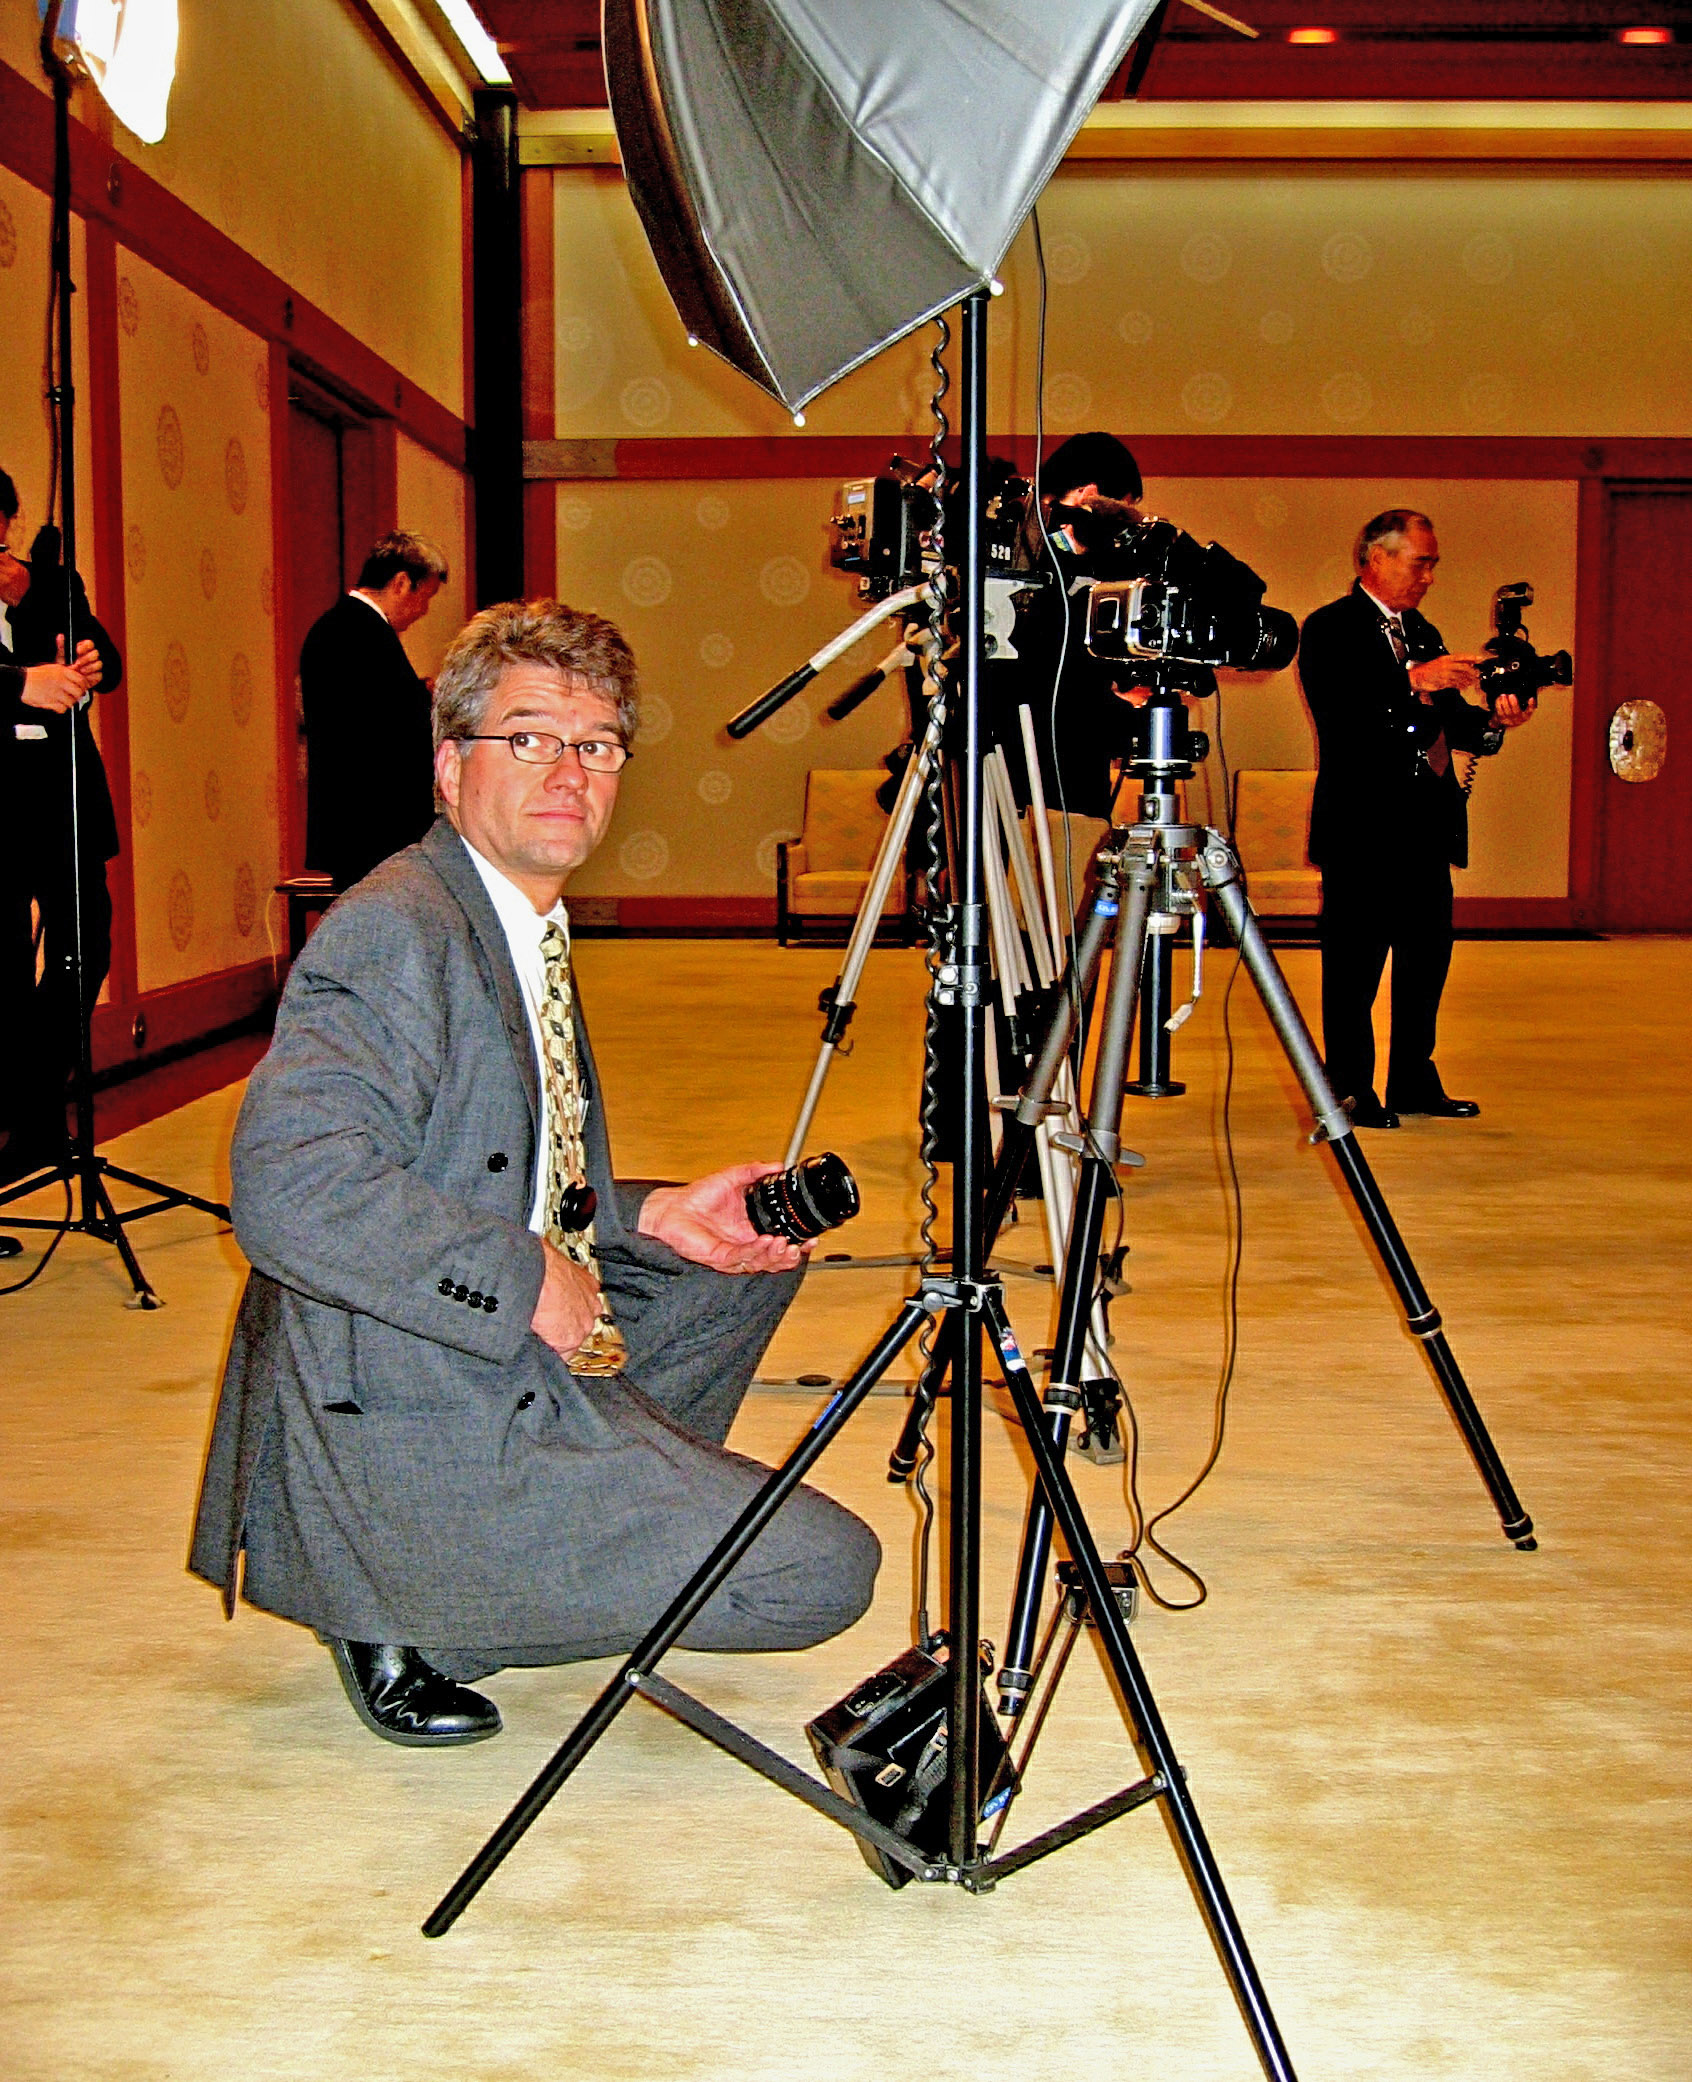 """Beat Pfändler getting his equipment set up to photograph the Japanese Empress for his book """"Swiss Guest Book""""."""